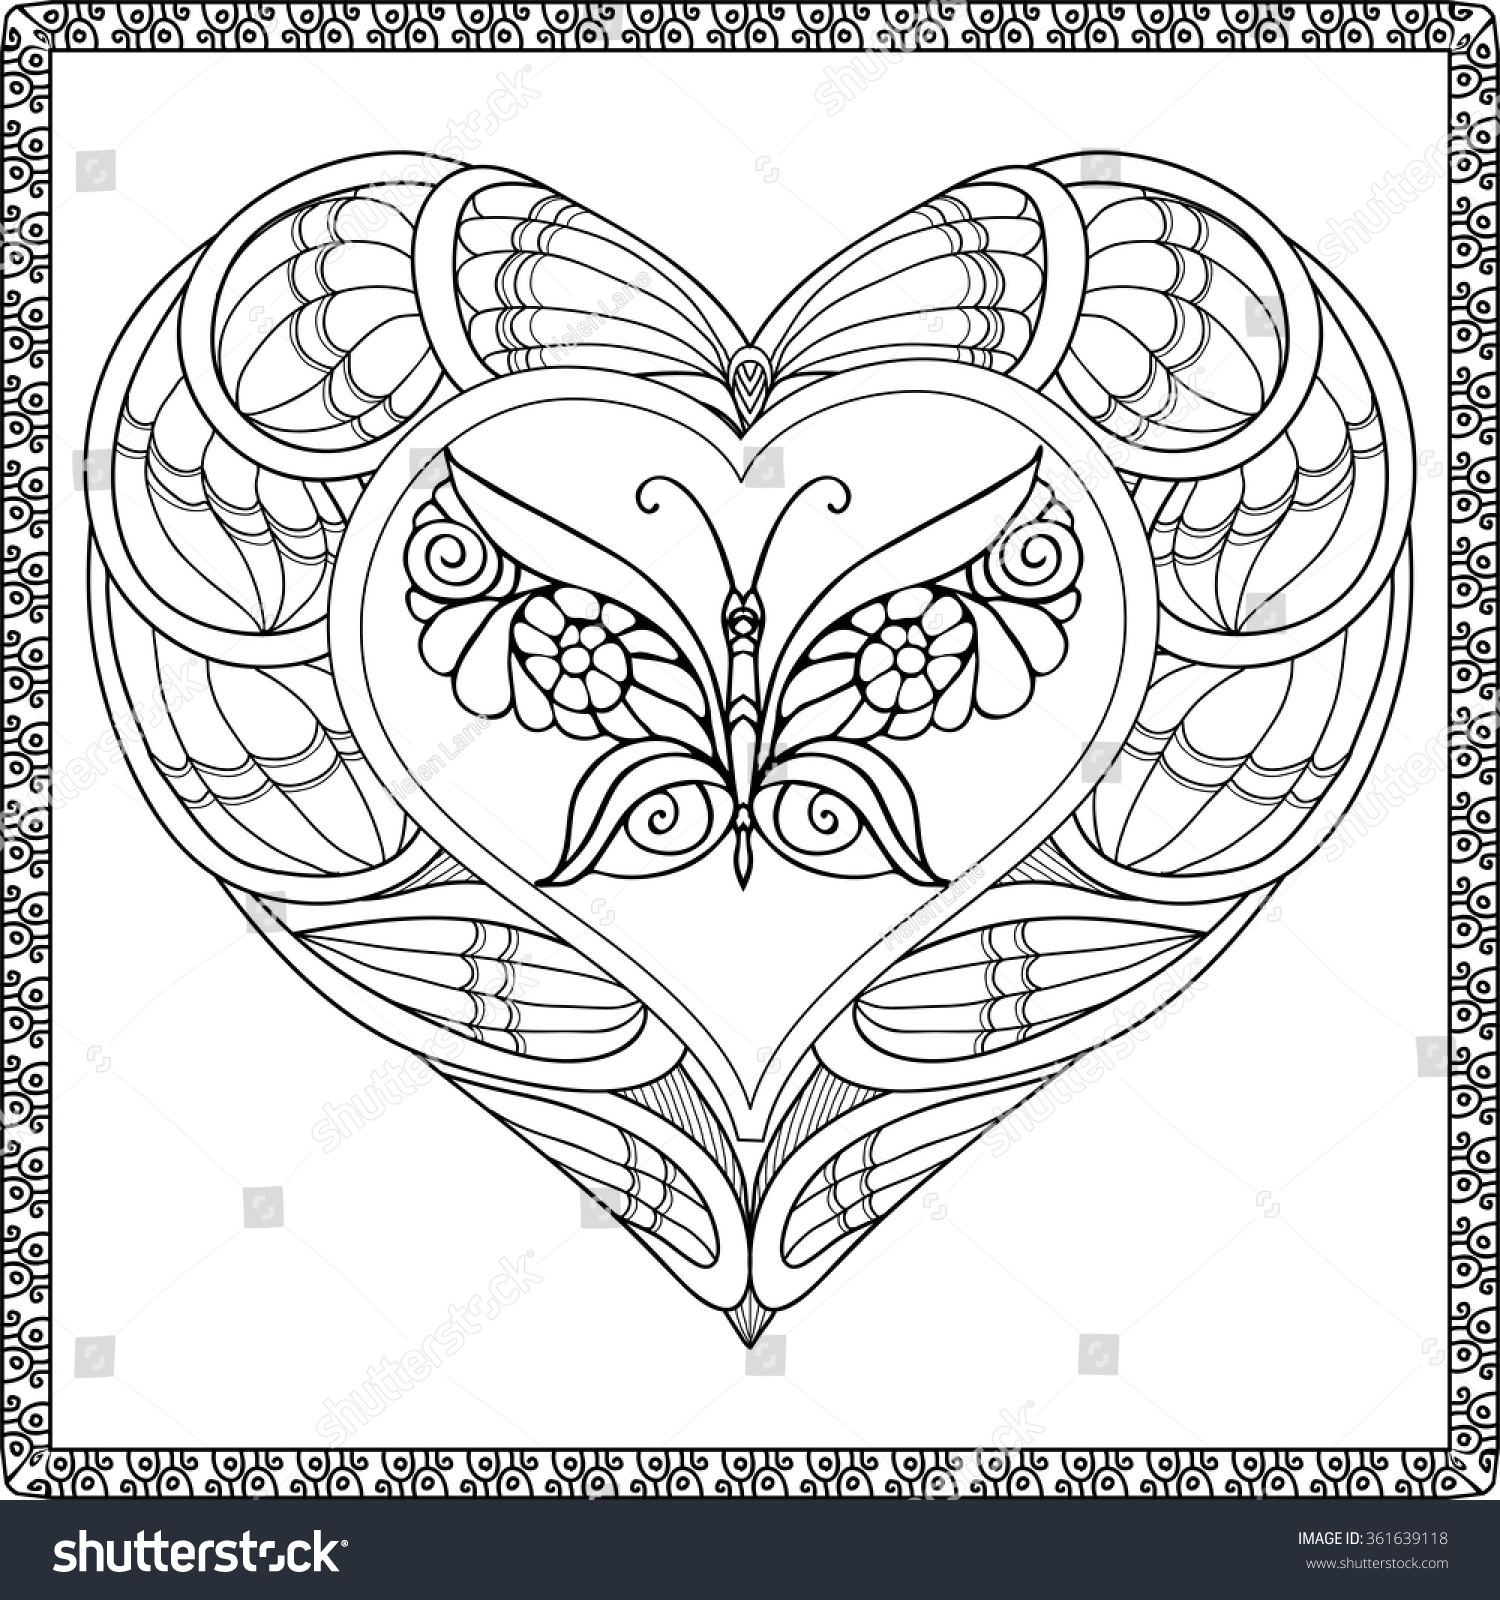 Downloadable butterfly coloring pages - Love Heart With Butterfly Coloring Book For Adult And Older Children Coloring Page